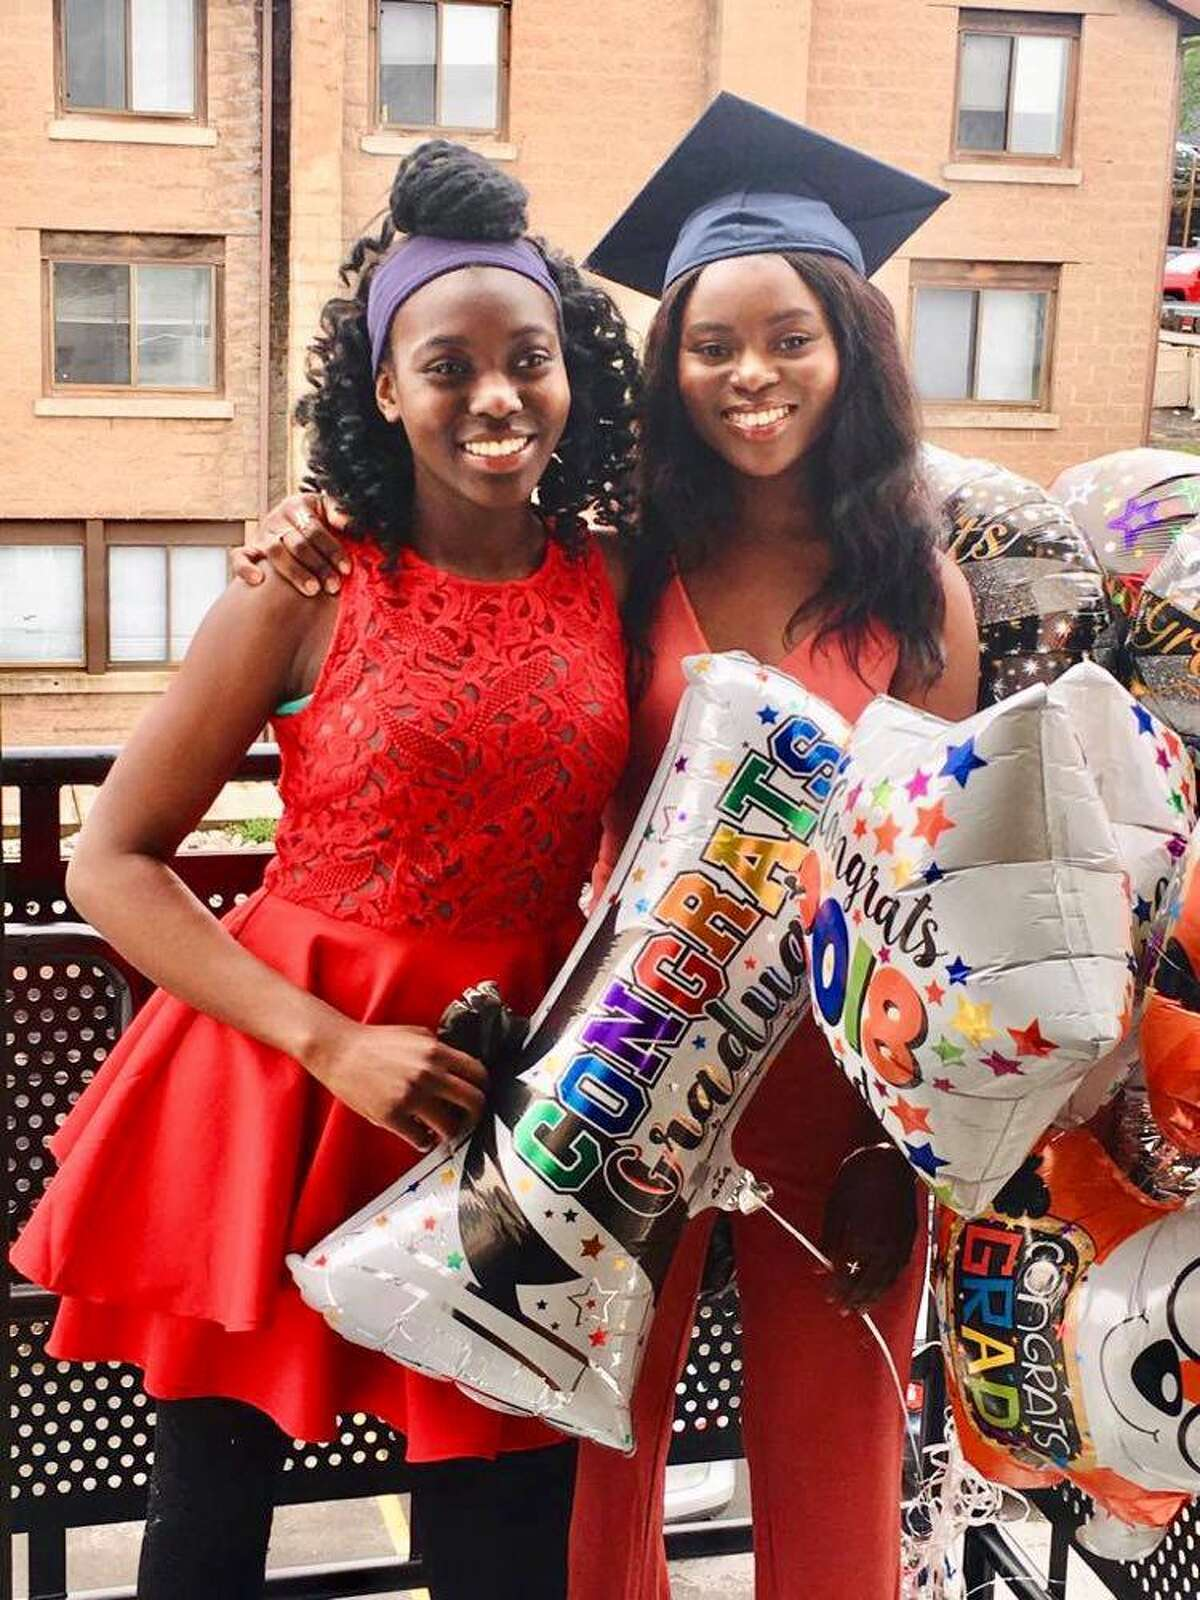 Rebecca Akinwale, left, is valedictorian for the Class of 2021 at Albany Leadership Charter School. Her sister, Tofunmi Akinwale, earned the distinction in 2014. The siblings have made history as the first family to have two ALCS valedictorians. Rebecca credits her close relationships with teachers and staff, as well as her support system at home, for helping her achieve this accomplishment. Tofunmi, who attended Syracuse University after graduating from ALCS, is extremely proud of her younger sister and knows that their parents' sacrifices have paid off. Tofunmi graduated with a degree in computer science. She lives in California and works for IBM. Rebecca will attend SU in the fall.